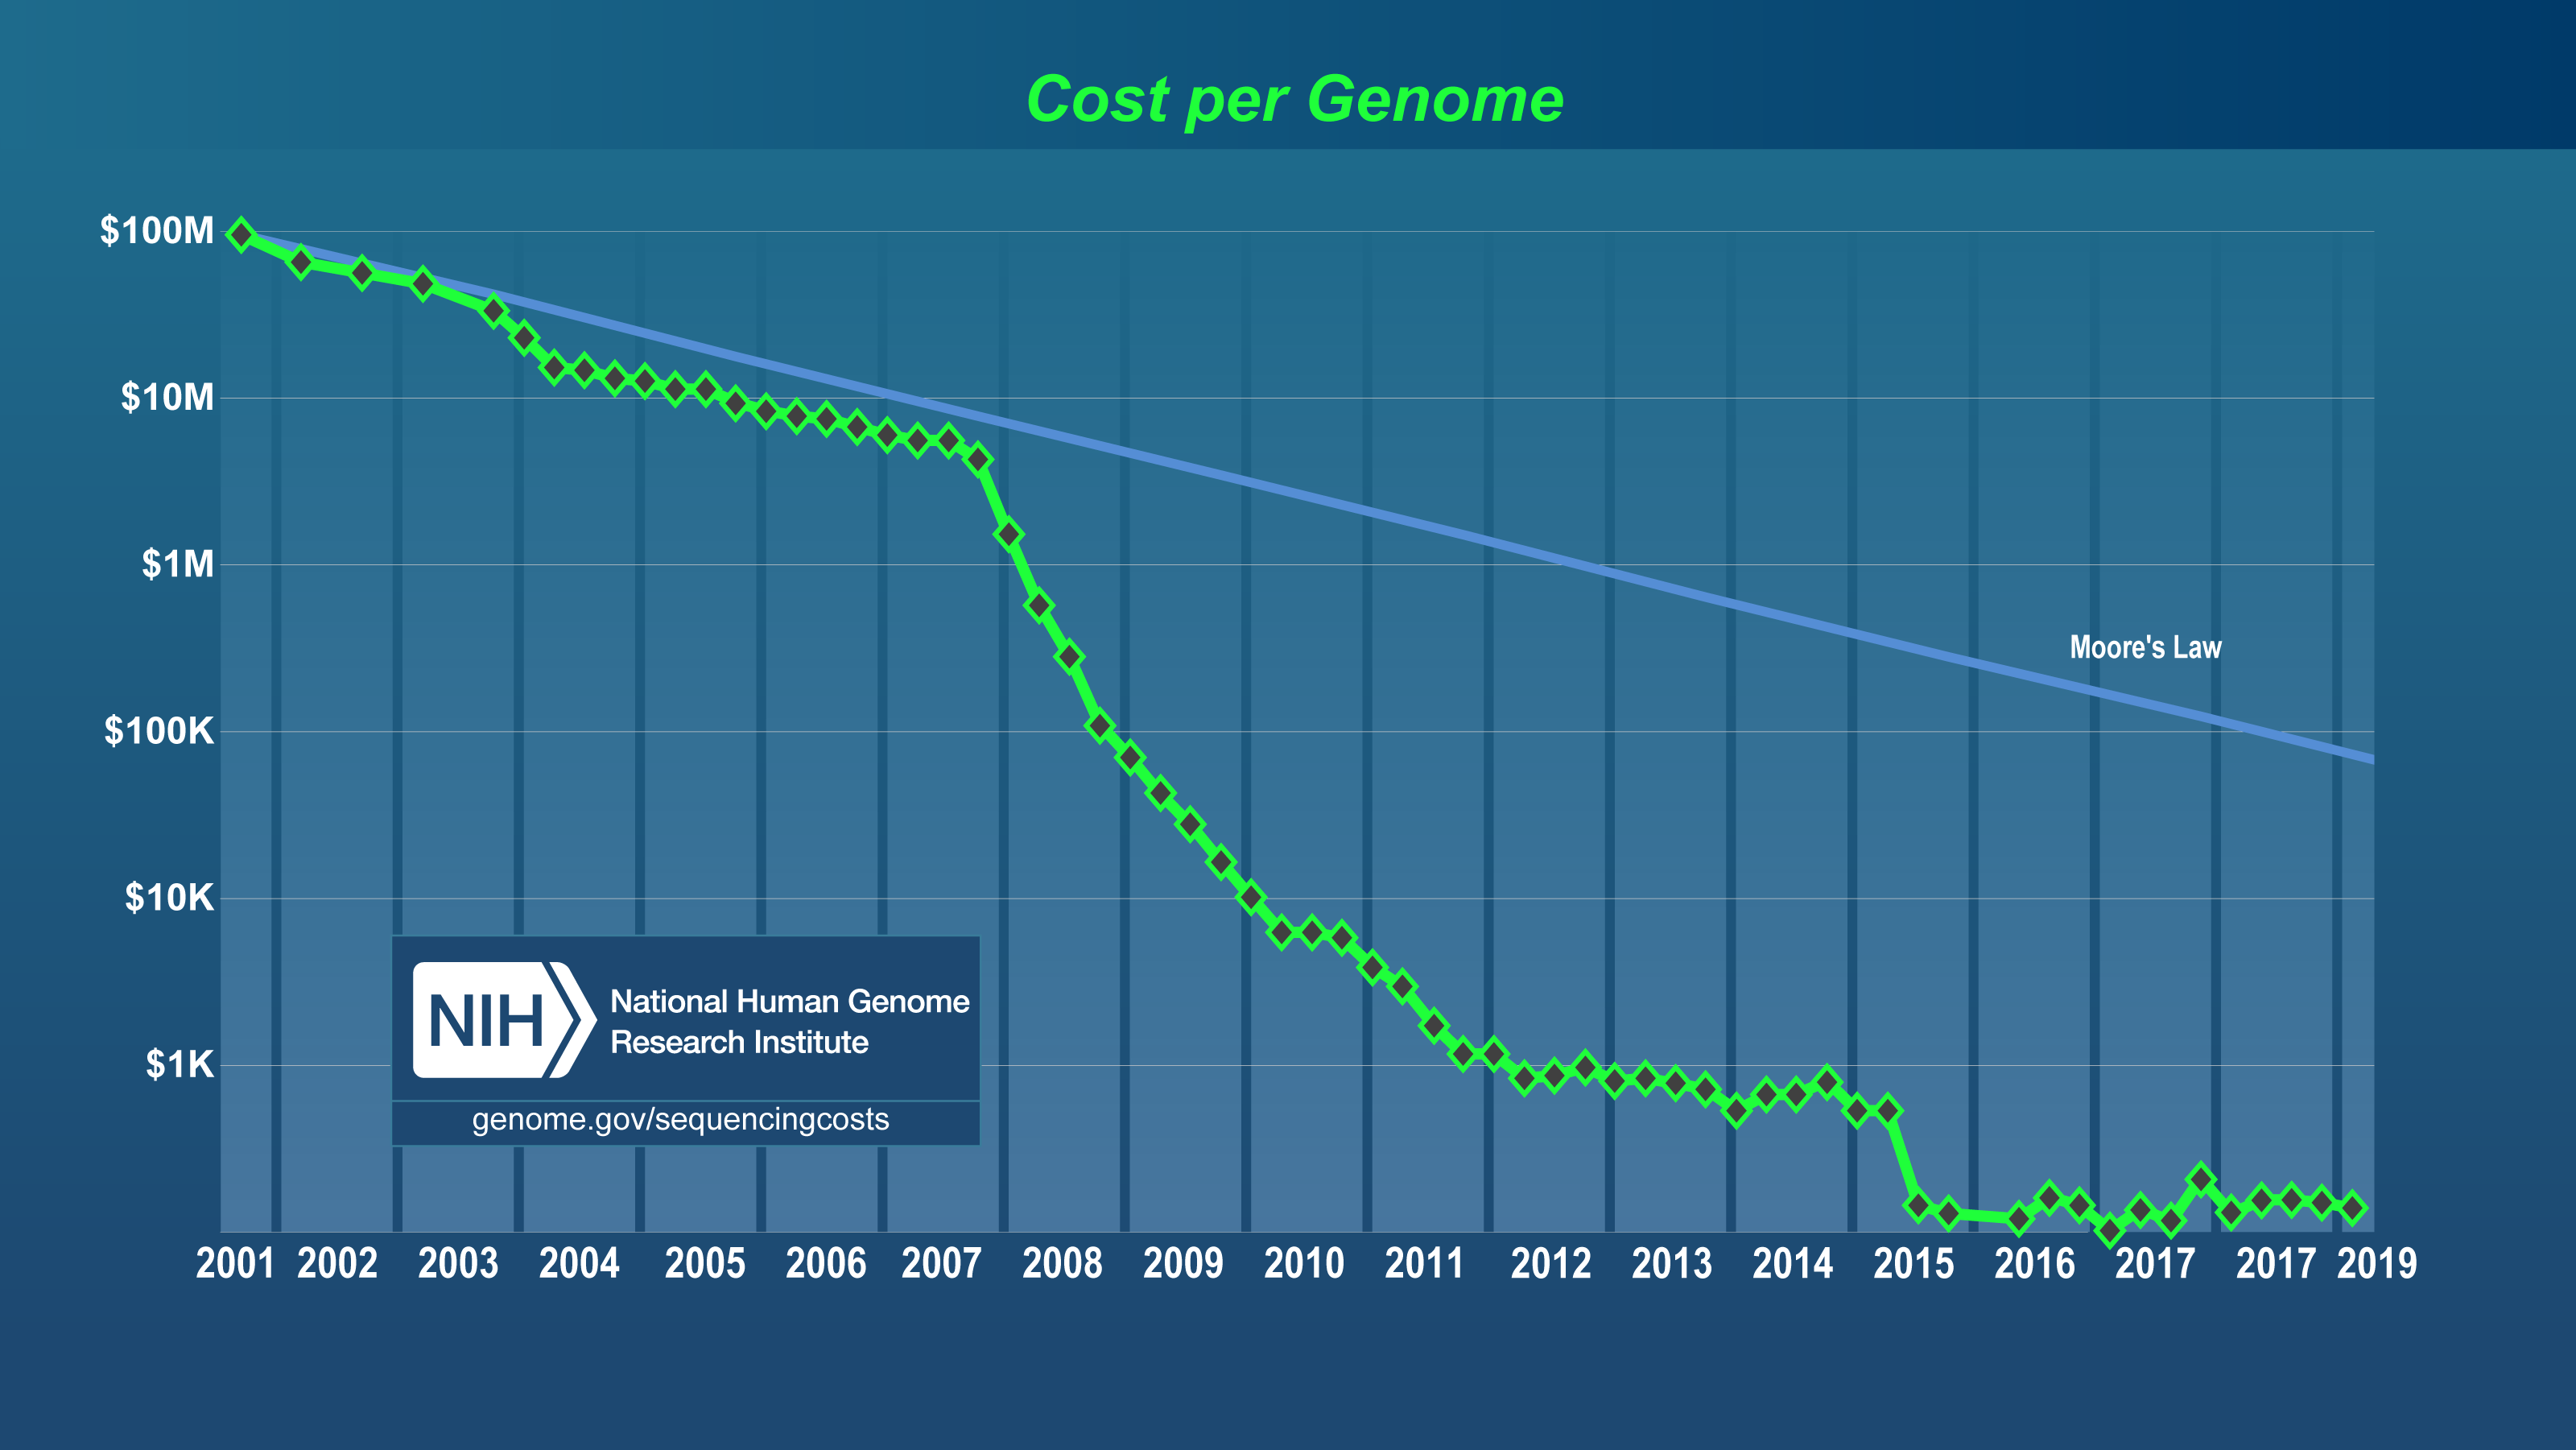 Sequencing Cost Per Genome Graph 2019